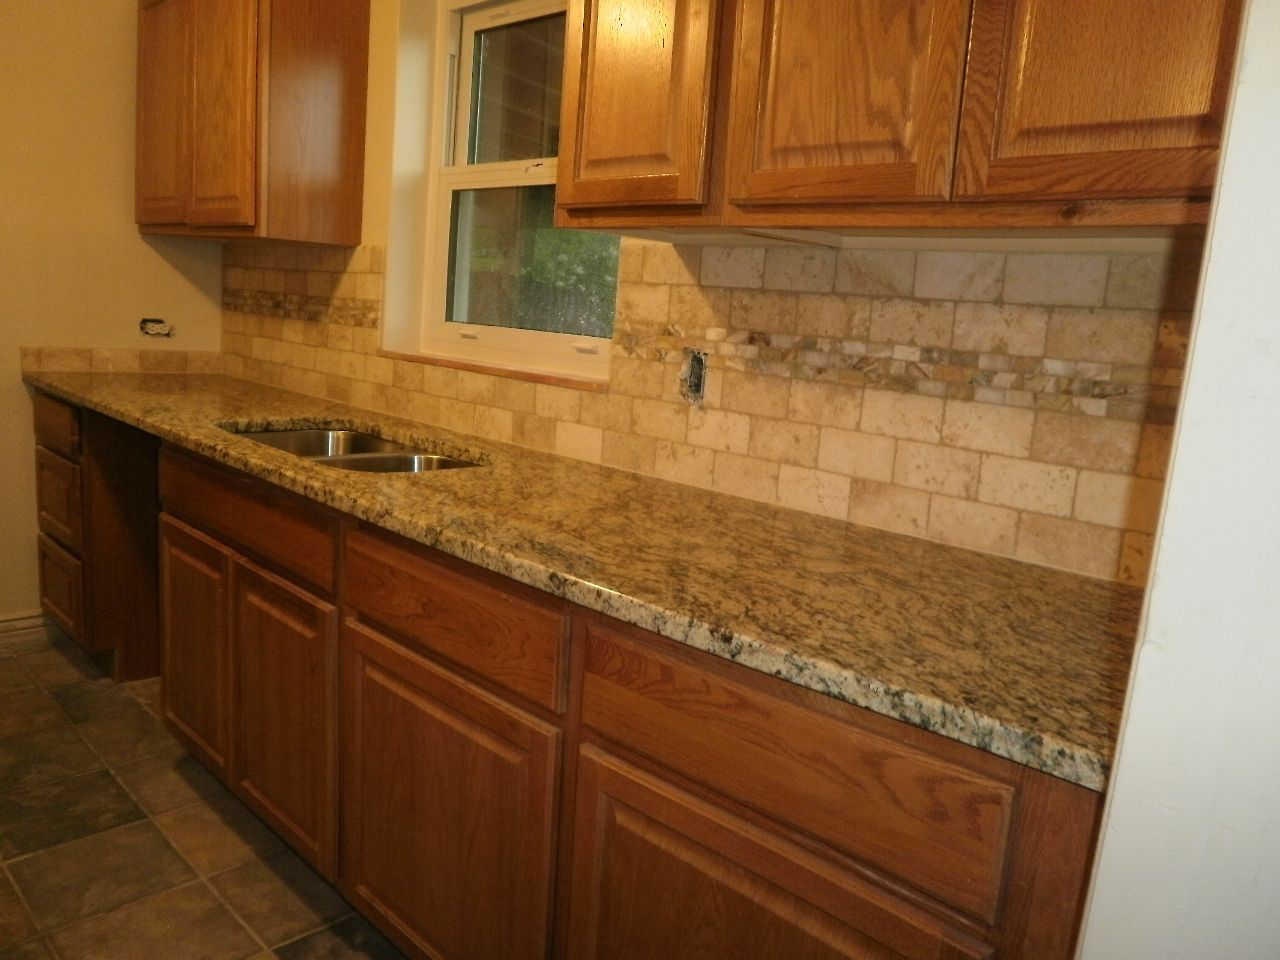 Kitchen Backsplash Ideas | Granite Countertops Backsplash Ideas Front Range  Backsplash Llc May .